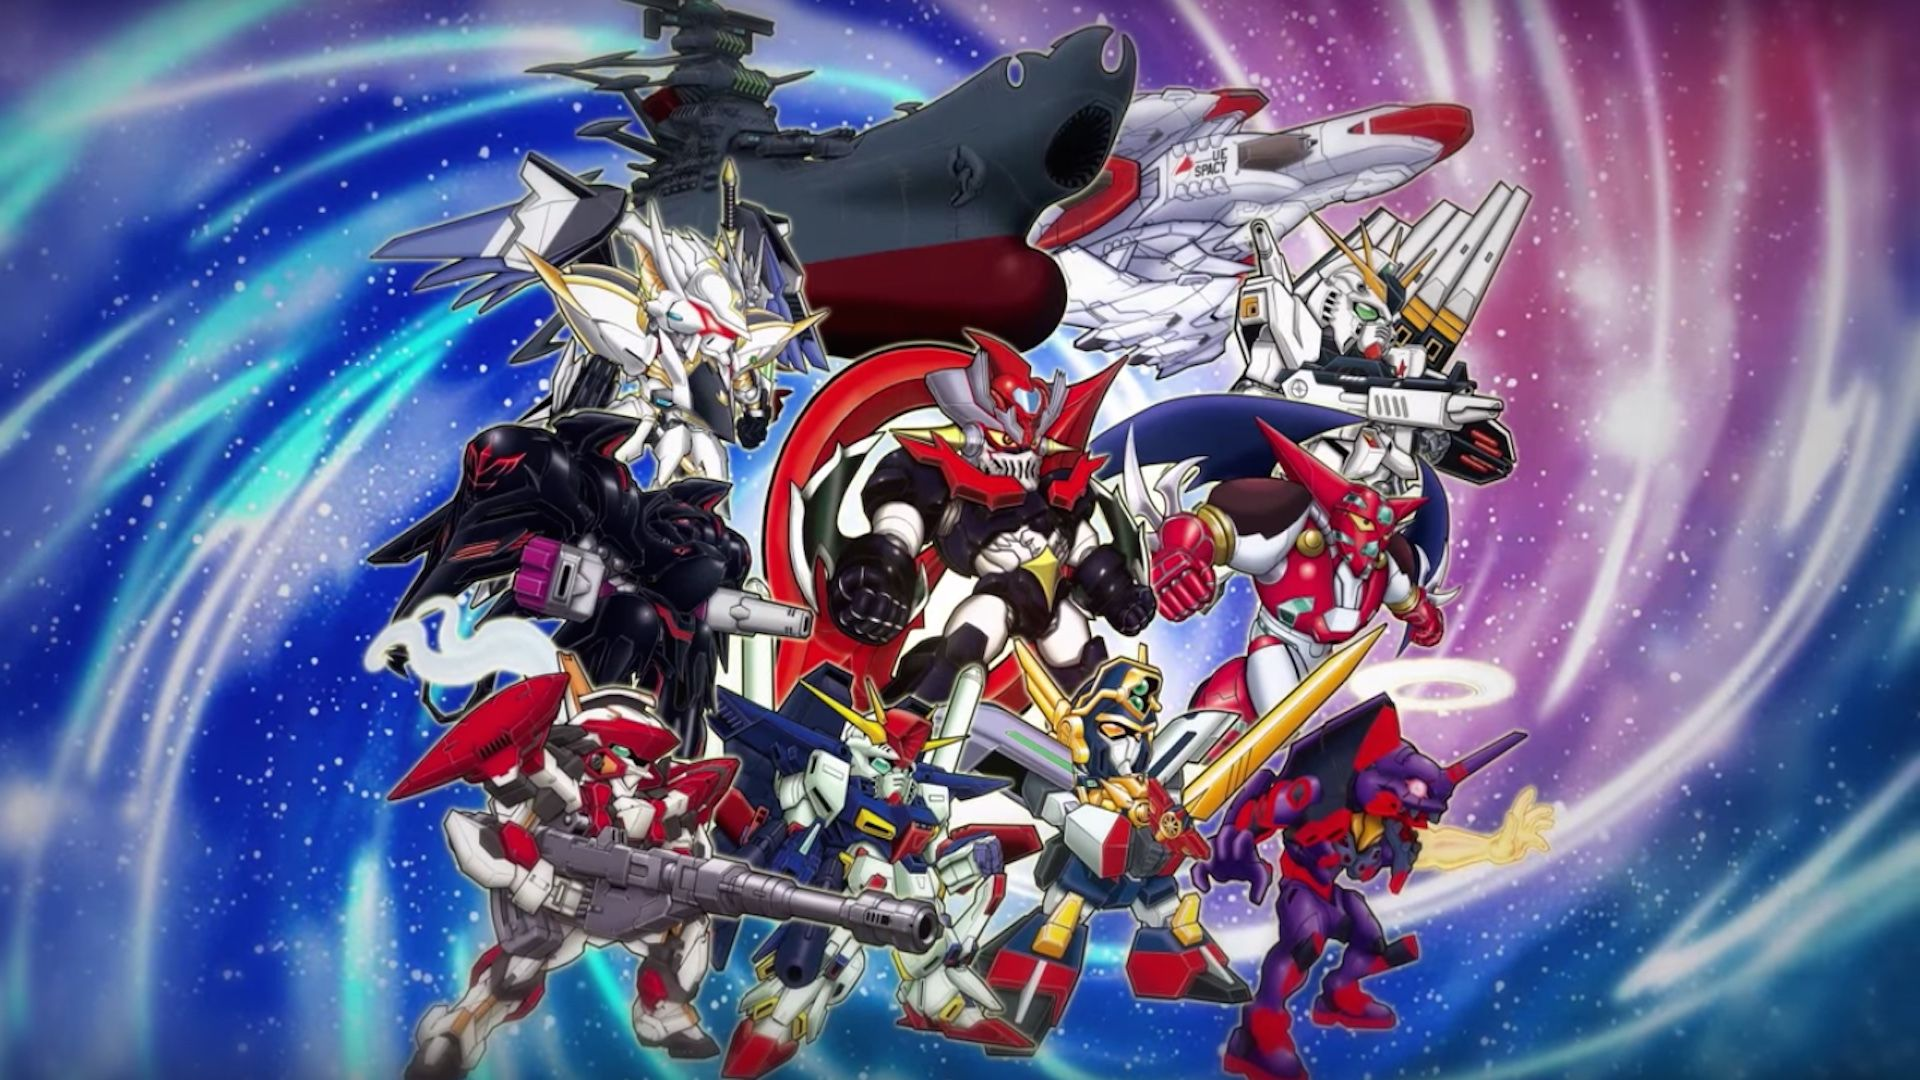 Super Robot Wars V Gets Release Date, New Characters